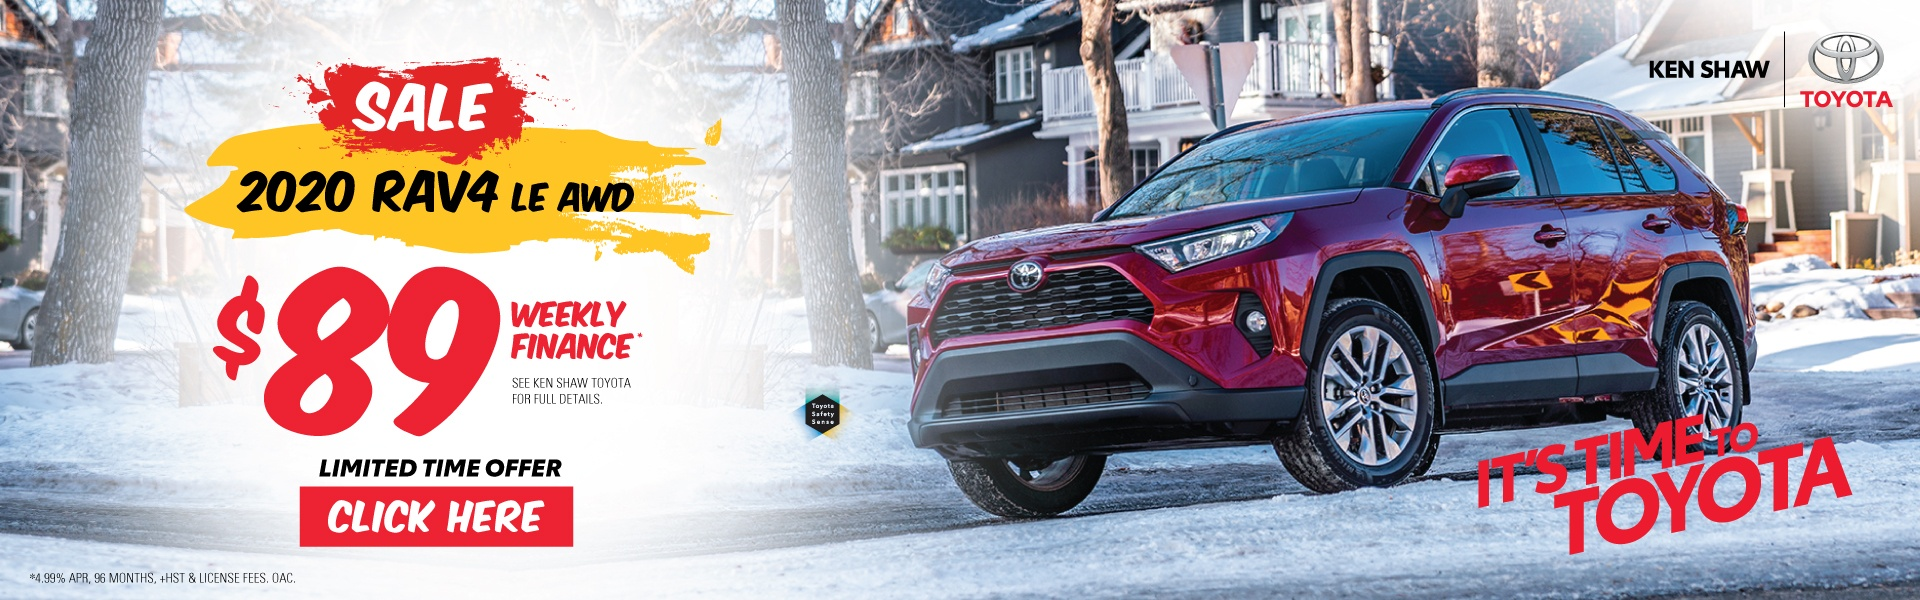 Ken Shaw Toyota Toronto Ontario 2020 RAV 4 LE CVT awd all wheel drive Sale best affordable SUV